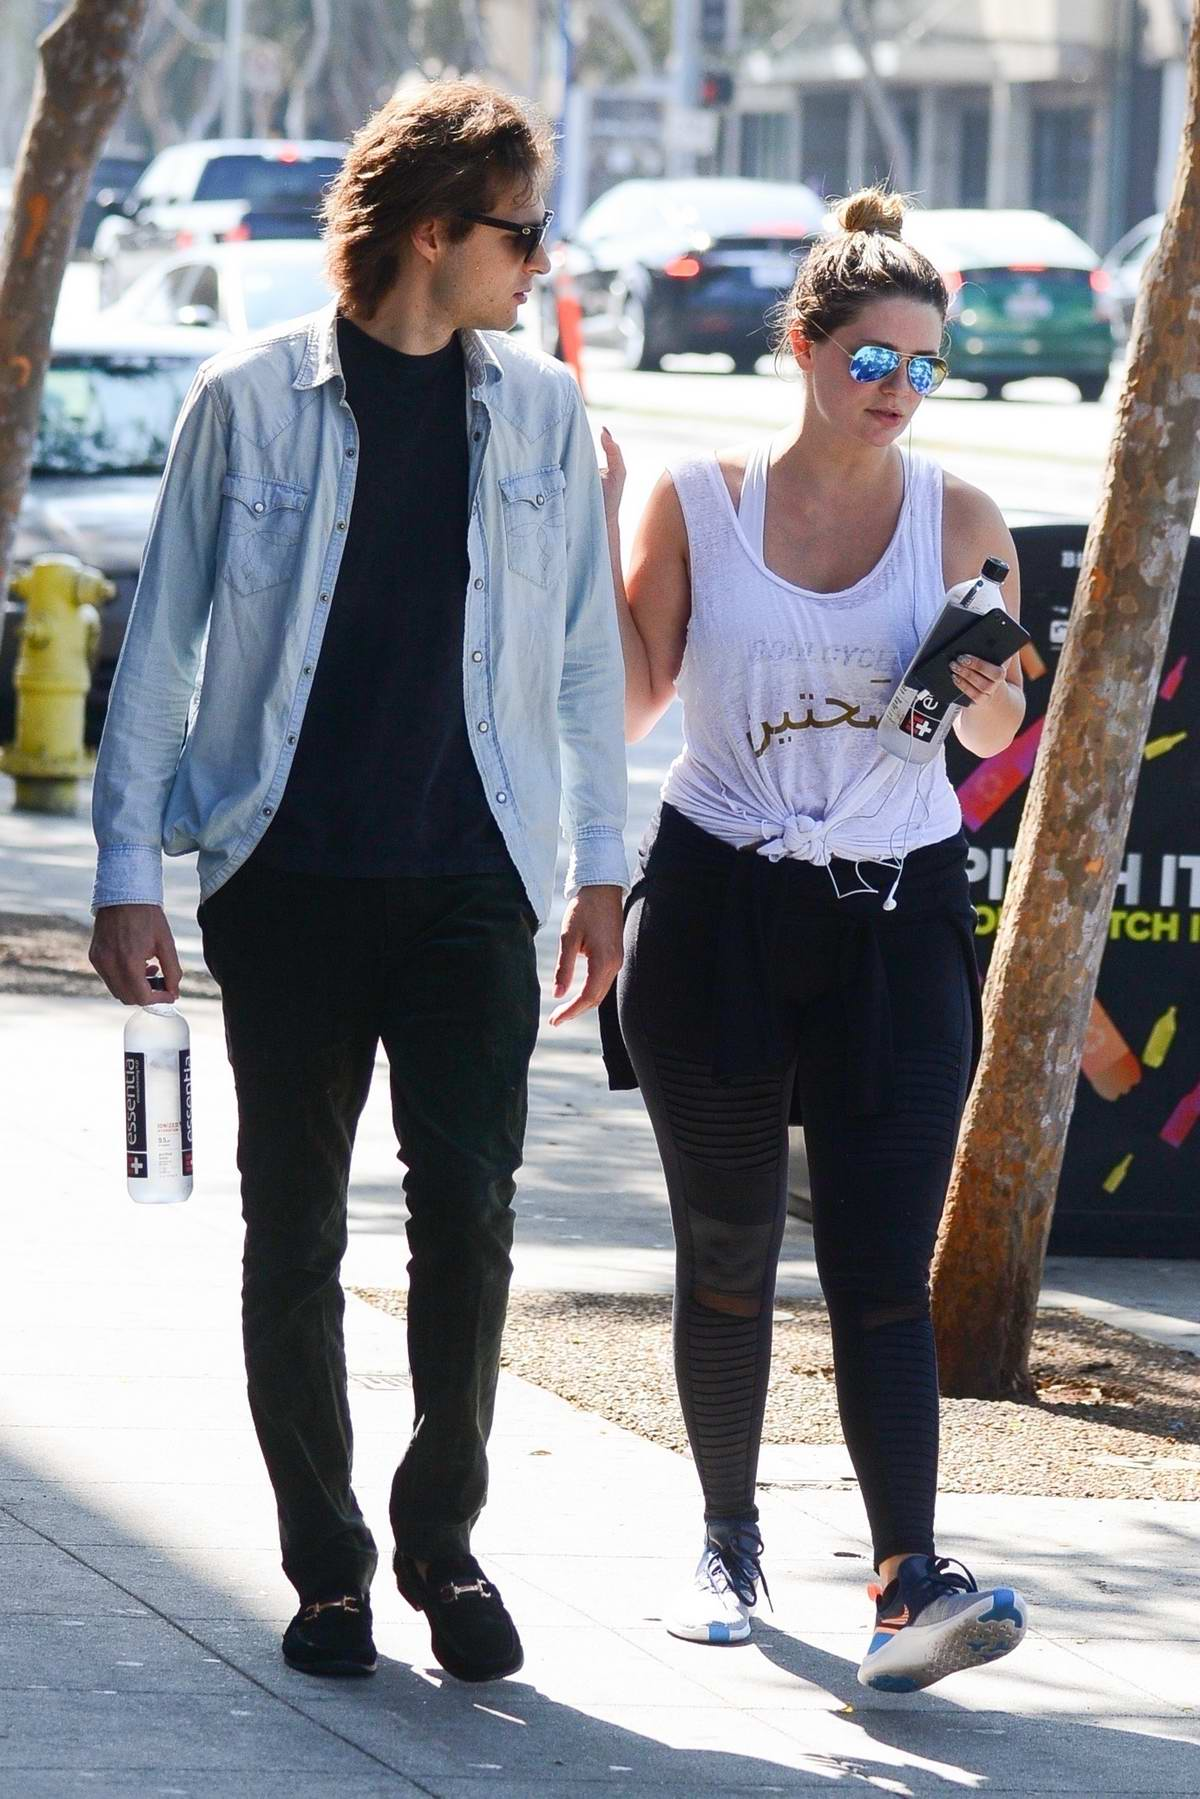 Mischa Barton spotted in white tank top and black leggings while out for walk with male friend in Los Angeles